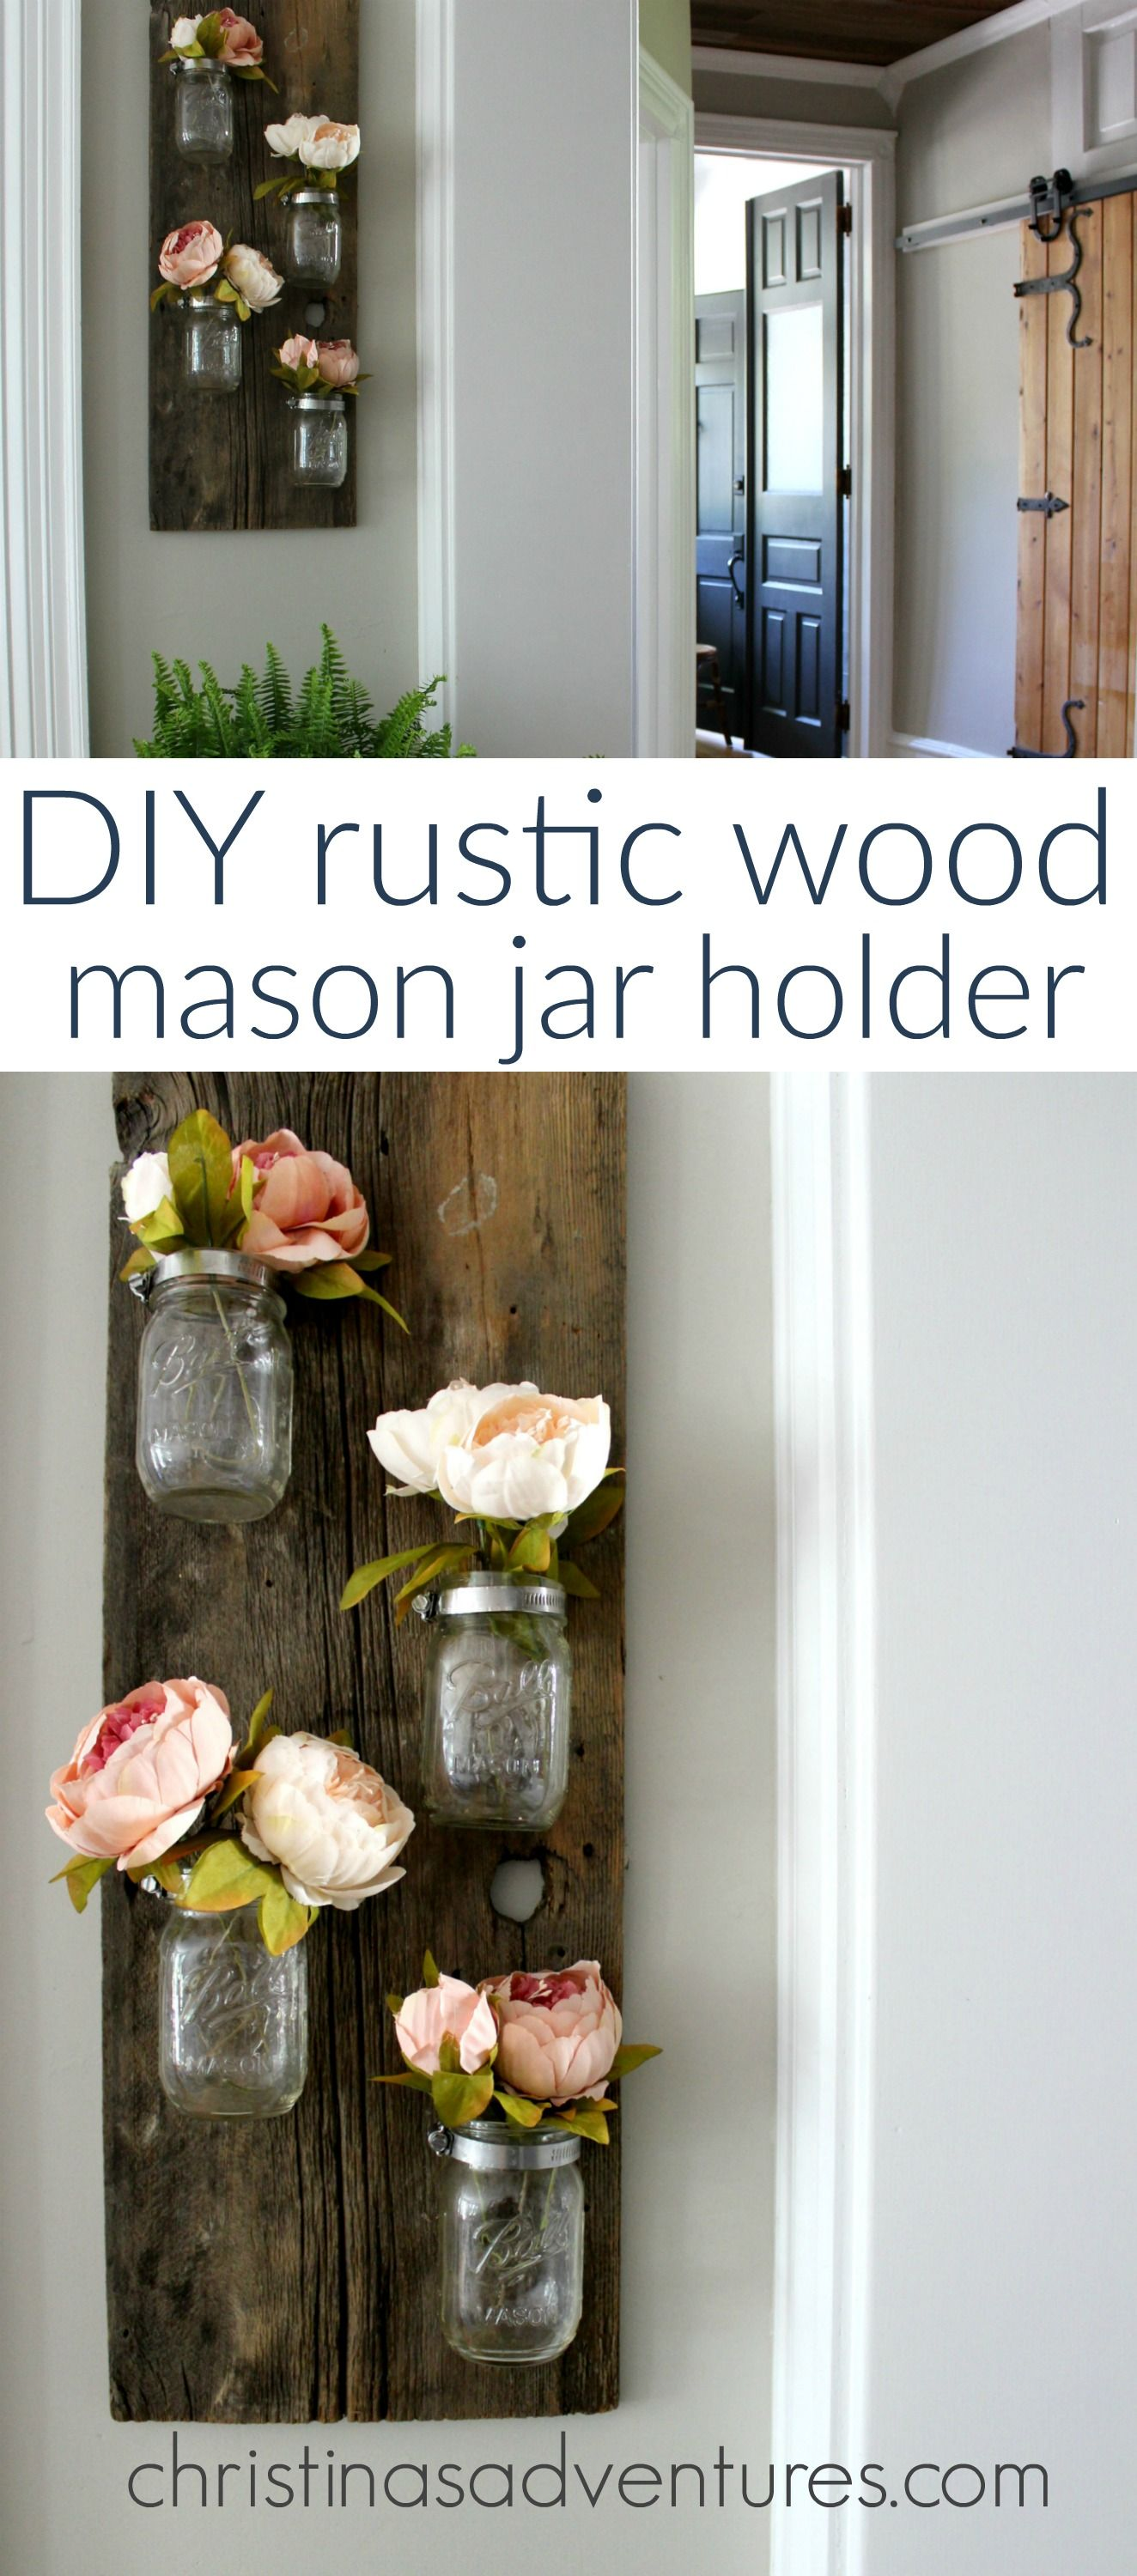 DIY wood mason jar holder | Mason jar holder, Rustic wood and Jar